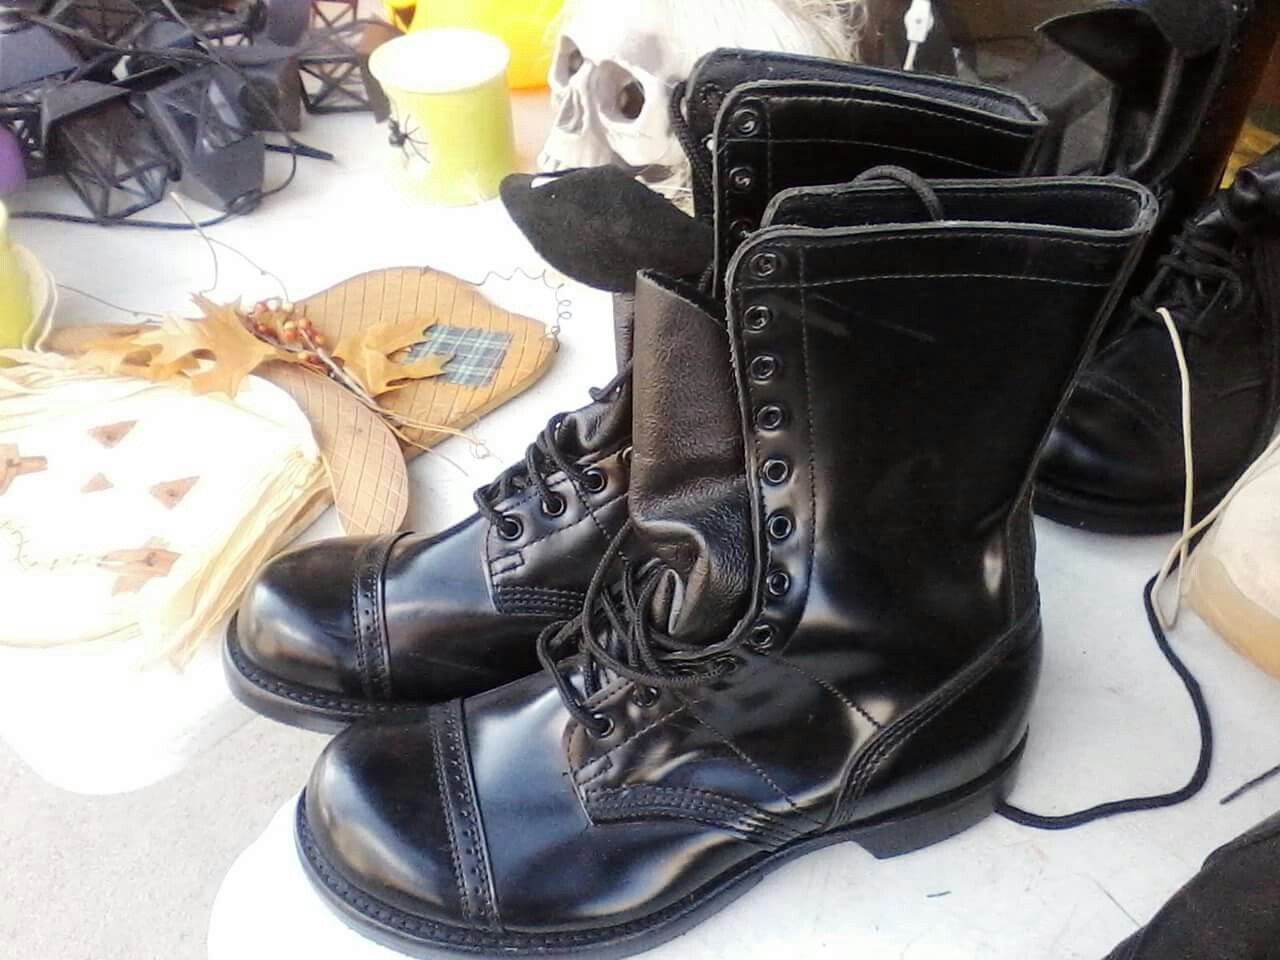 Boots we used to wear for inspections jump boots spit